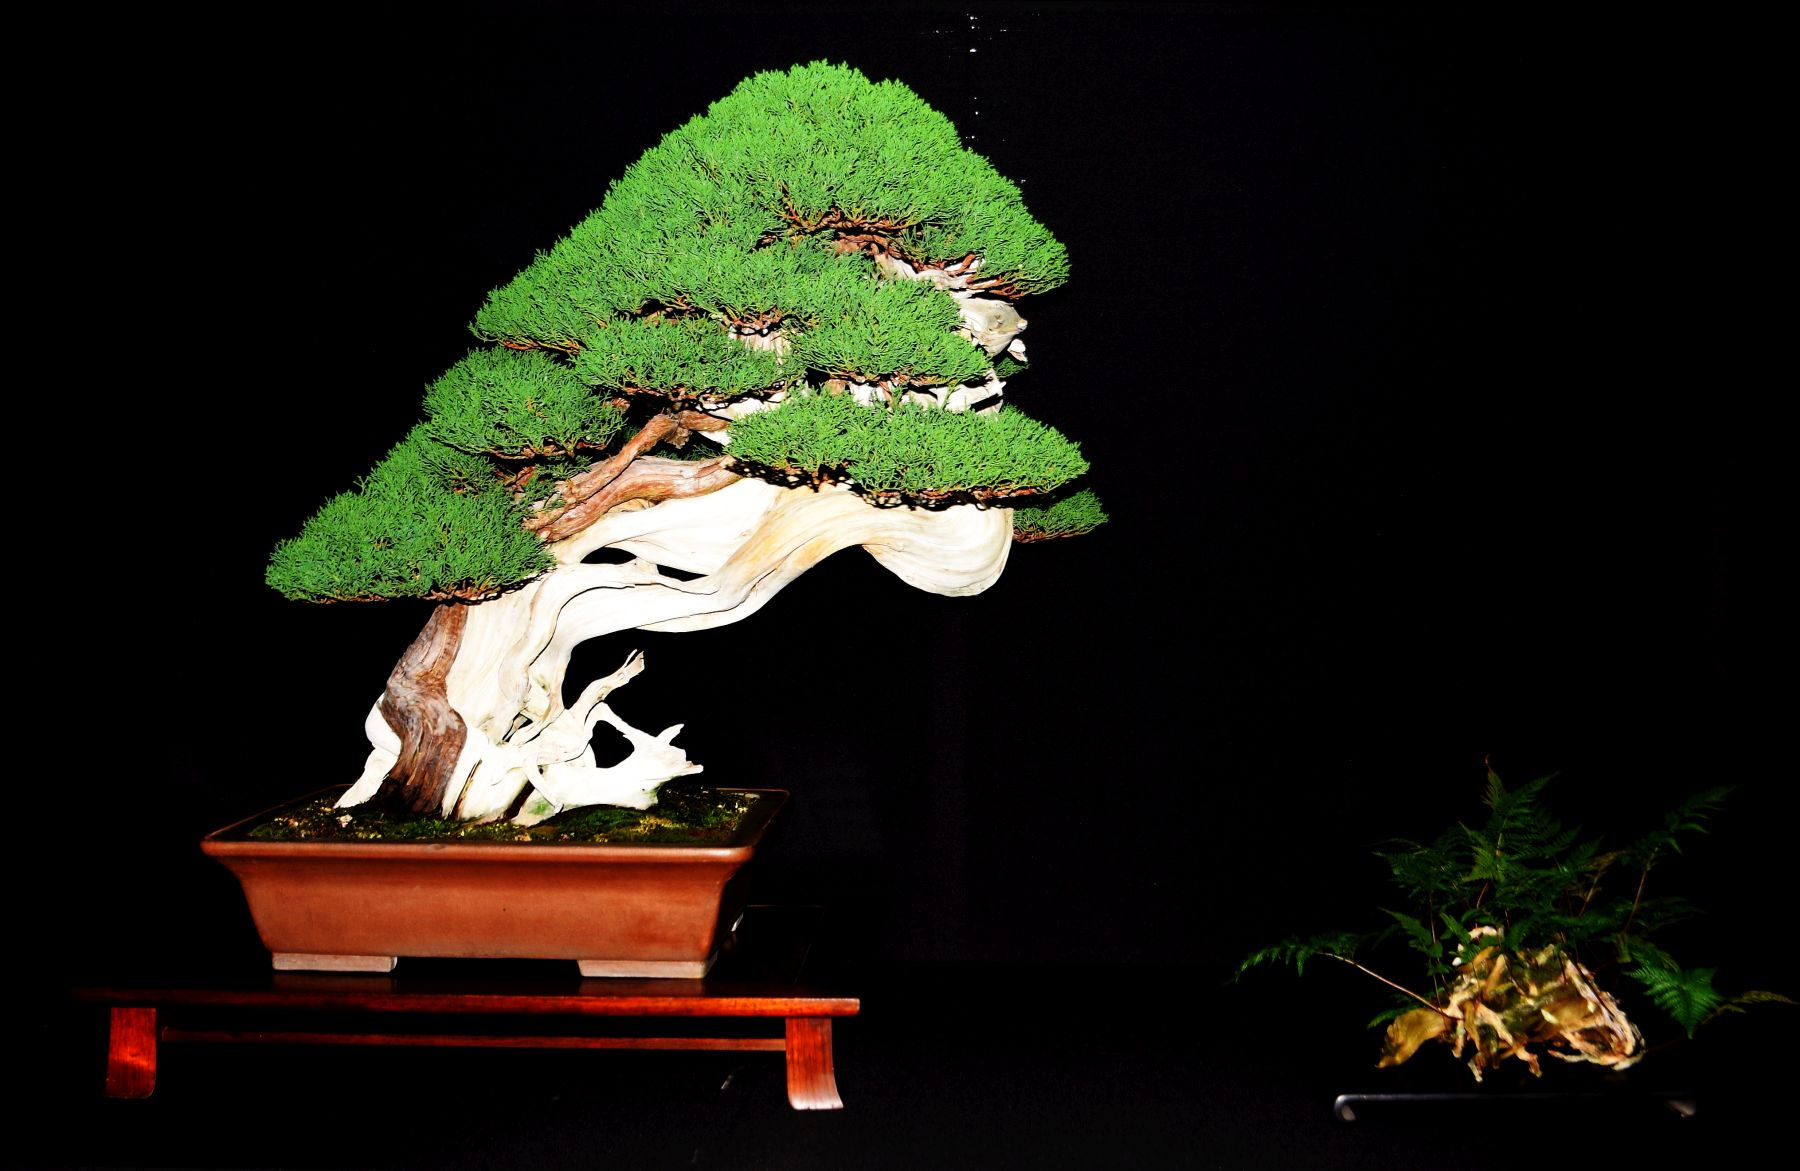 bonsai-museum-luis-vallejo-024